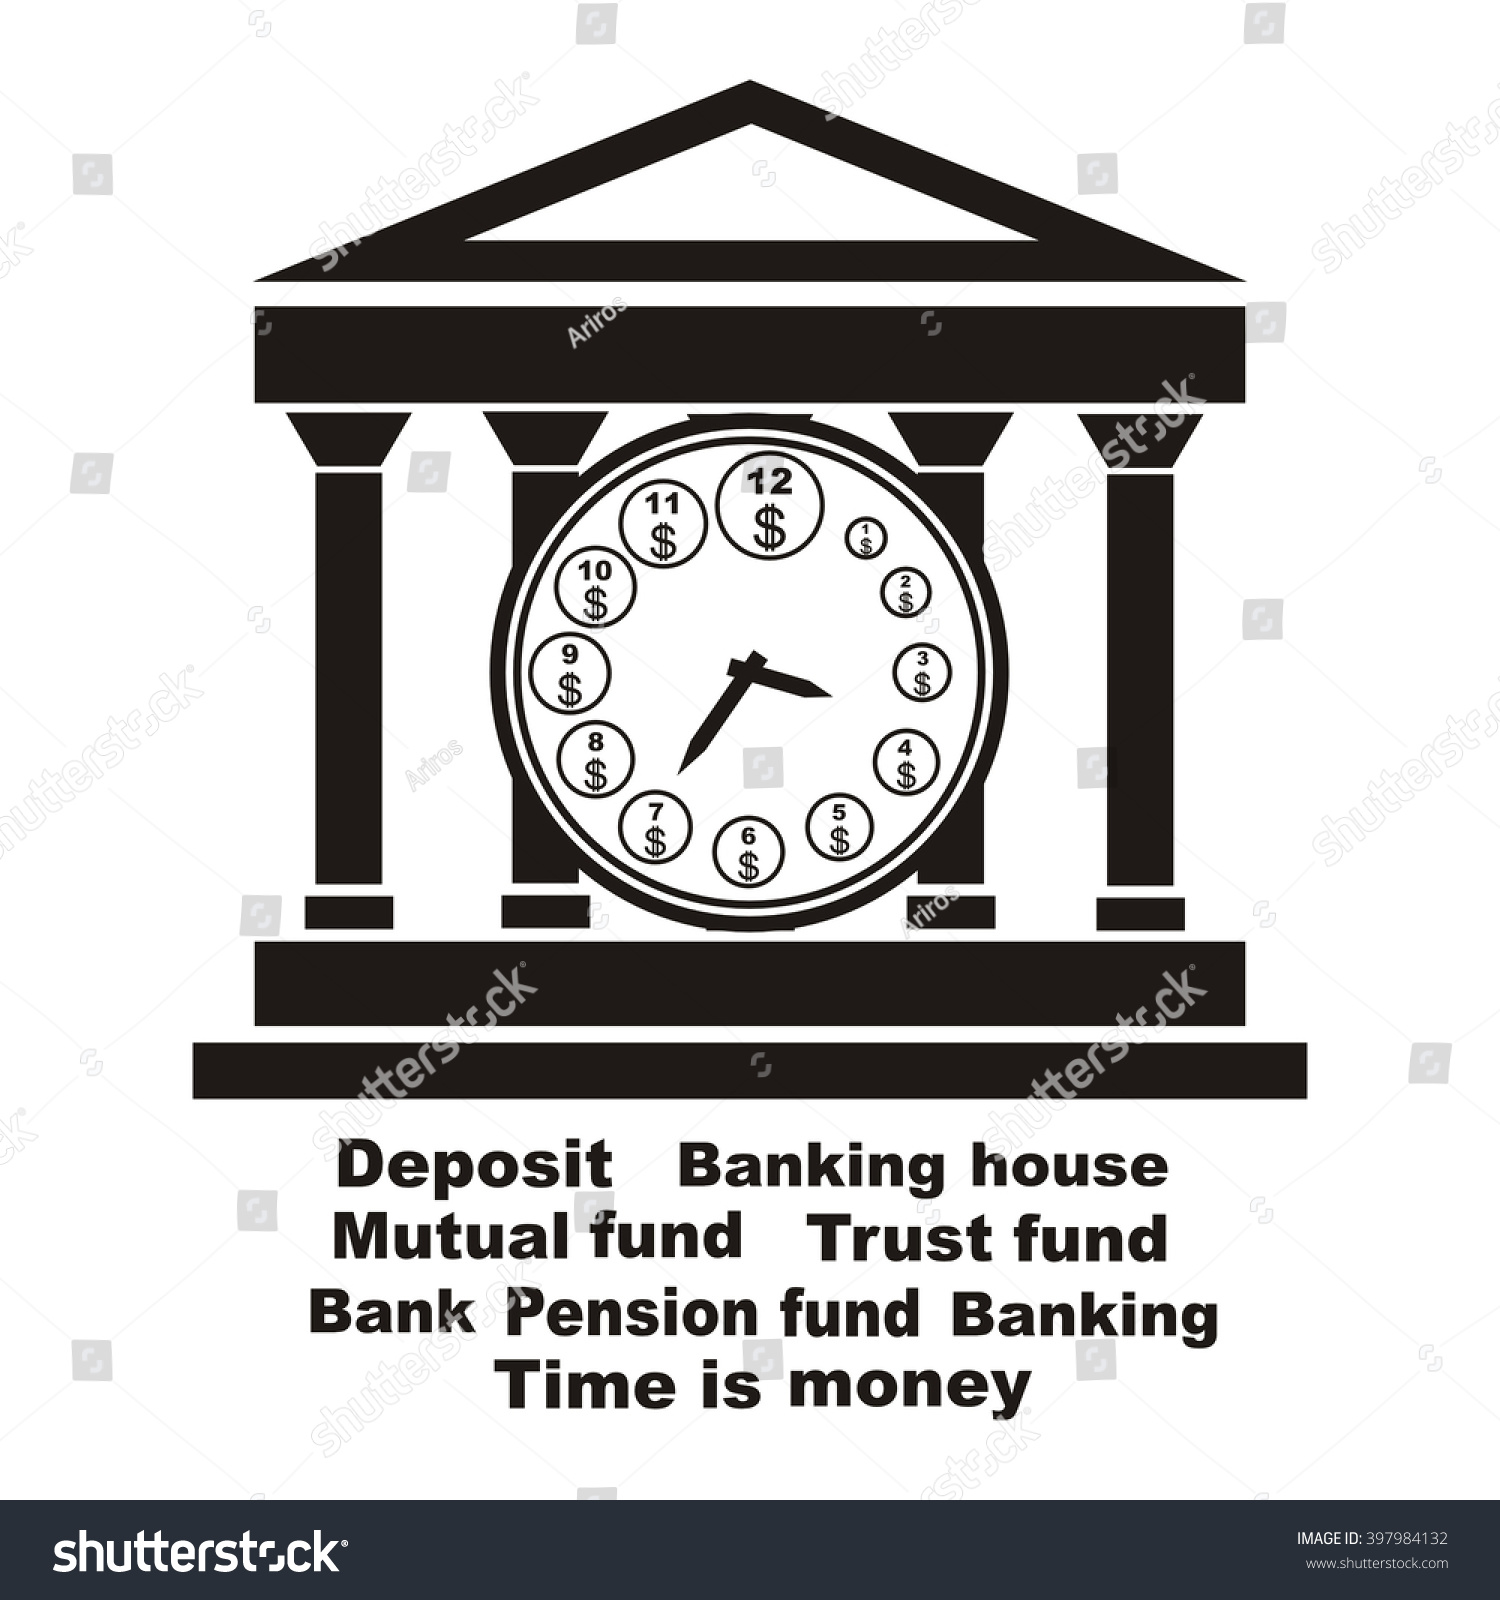 Banking symbol bank symbol pension fund stock vector 397984132 banking symbol bank symbol pension fund symbol mutual fund symbol computer drawing biocorpaavc Images